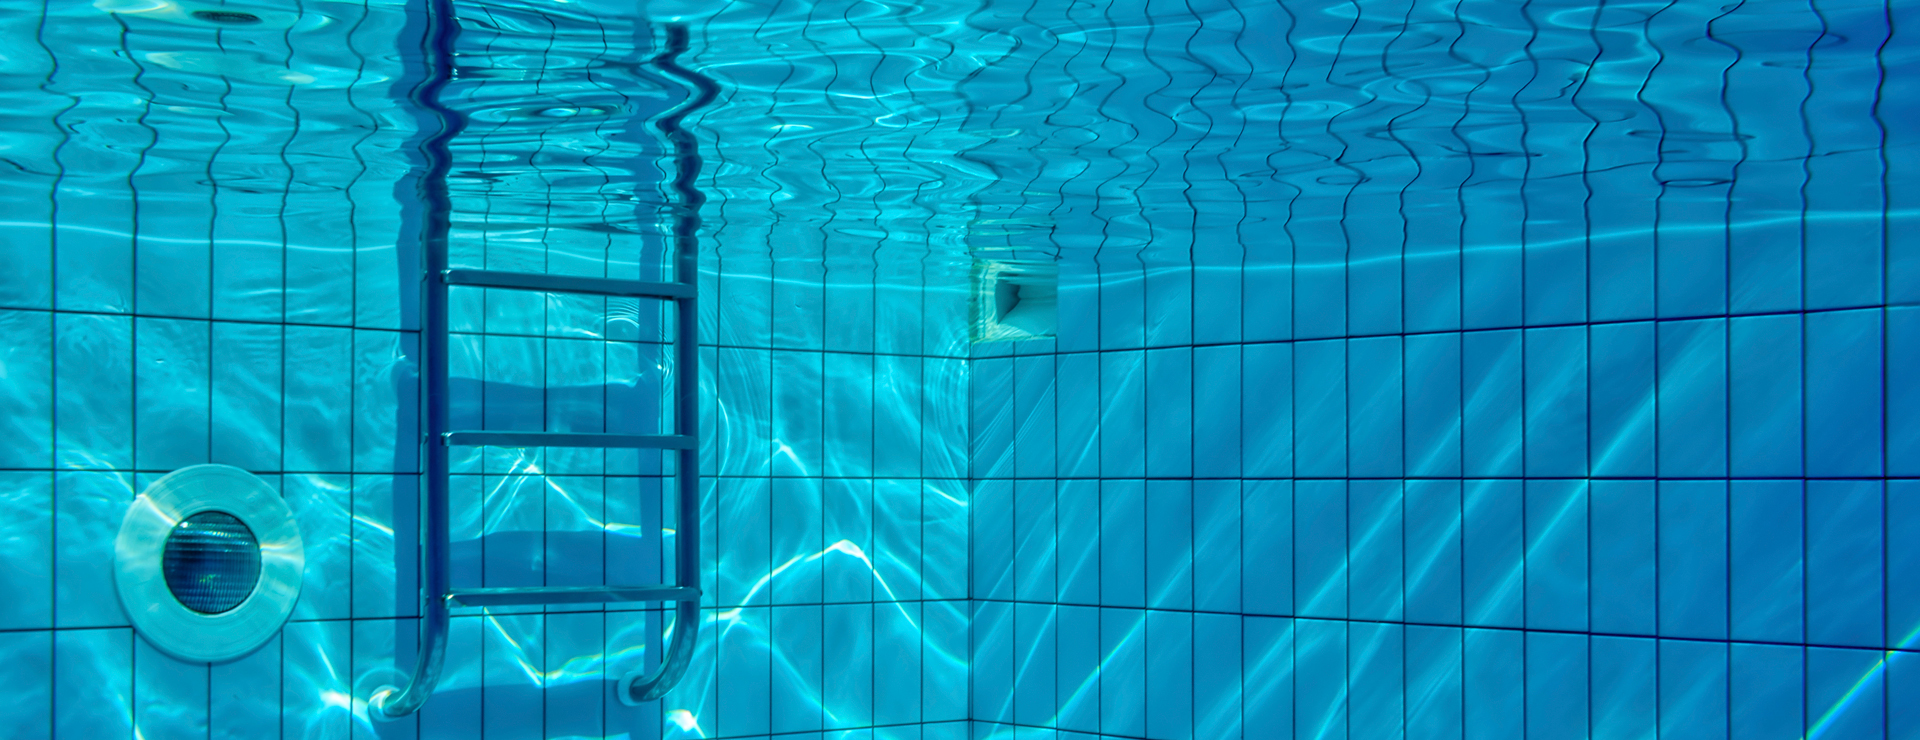 Swimming pool accident attorney san antonio texas - According to jim the swimming pool ...